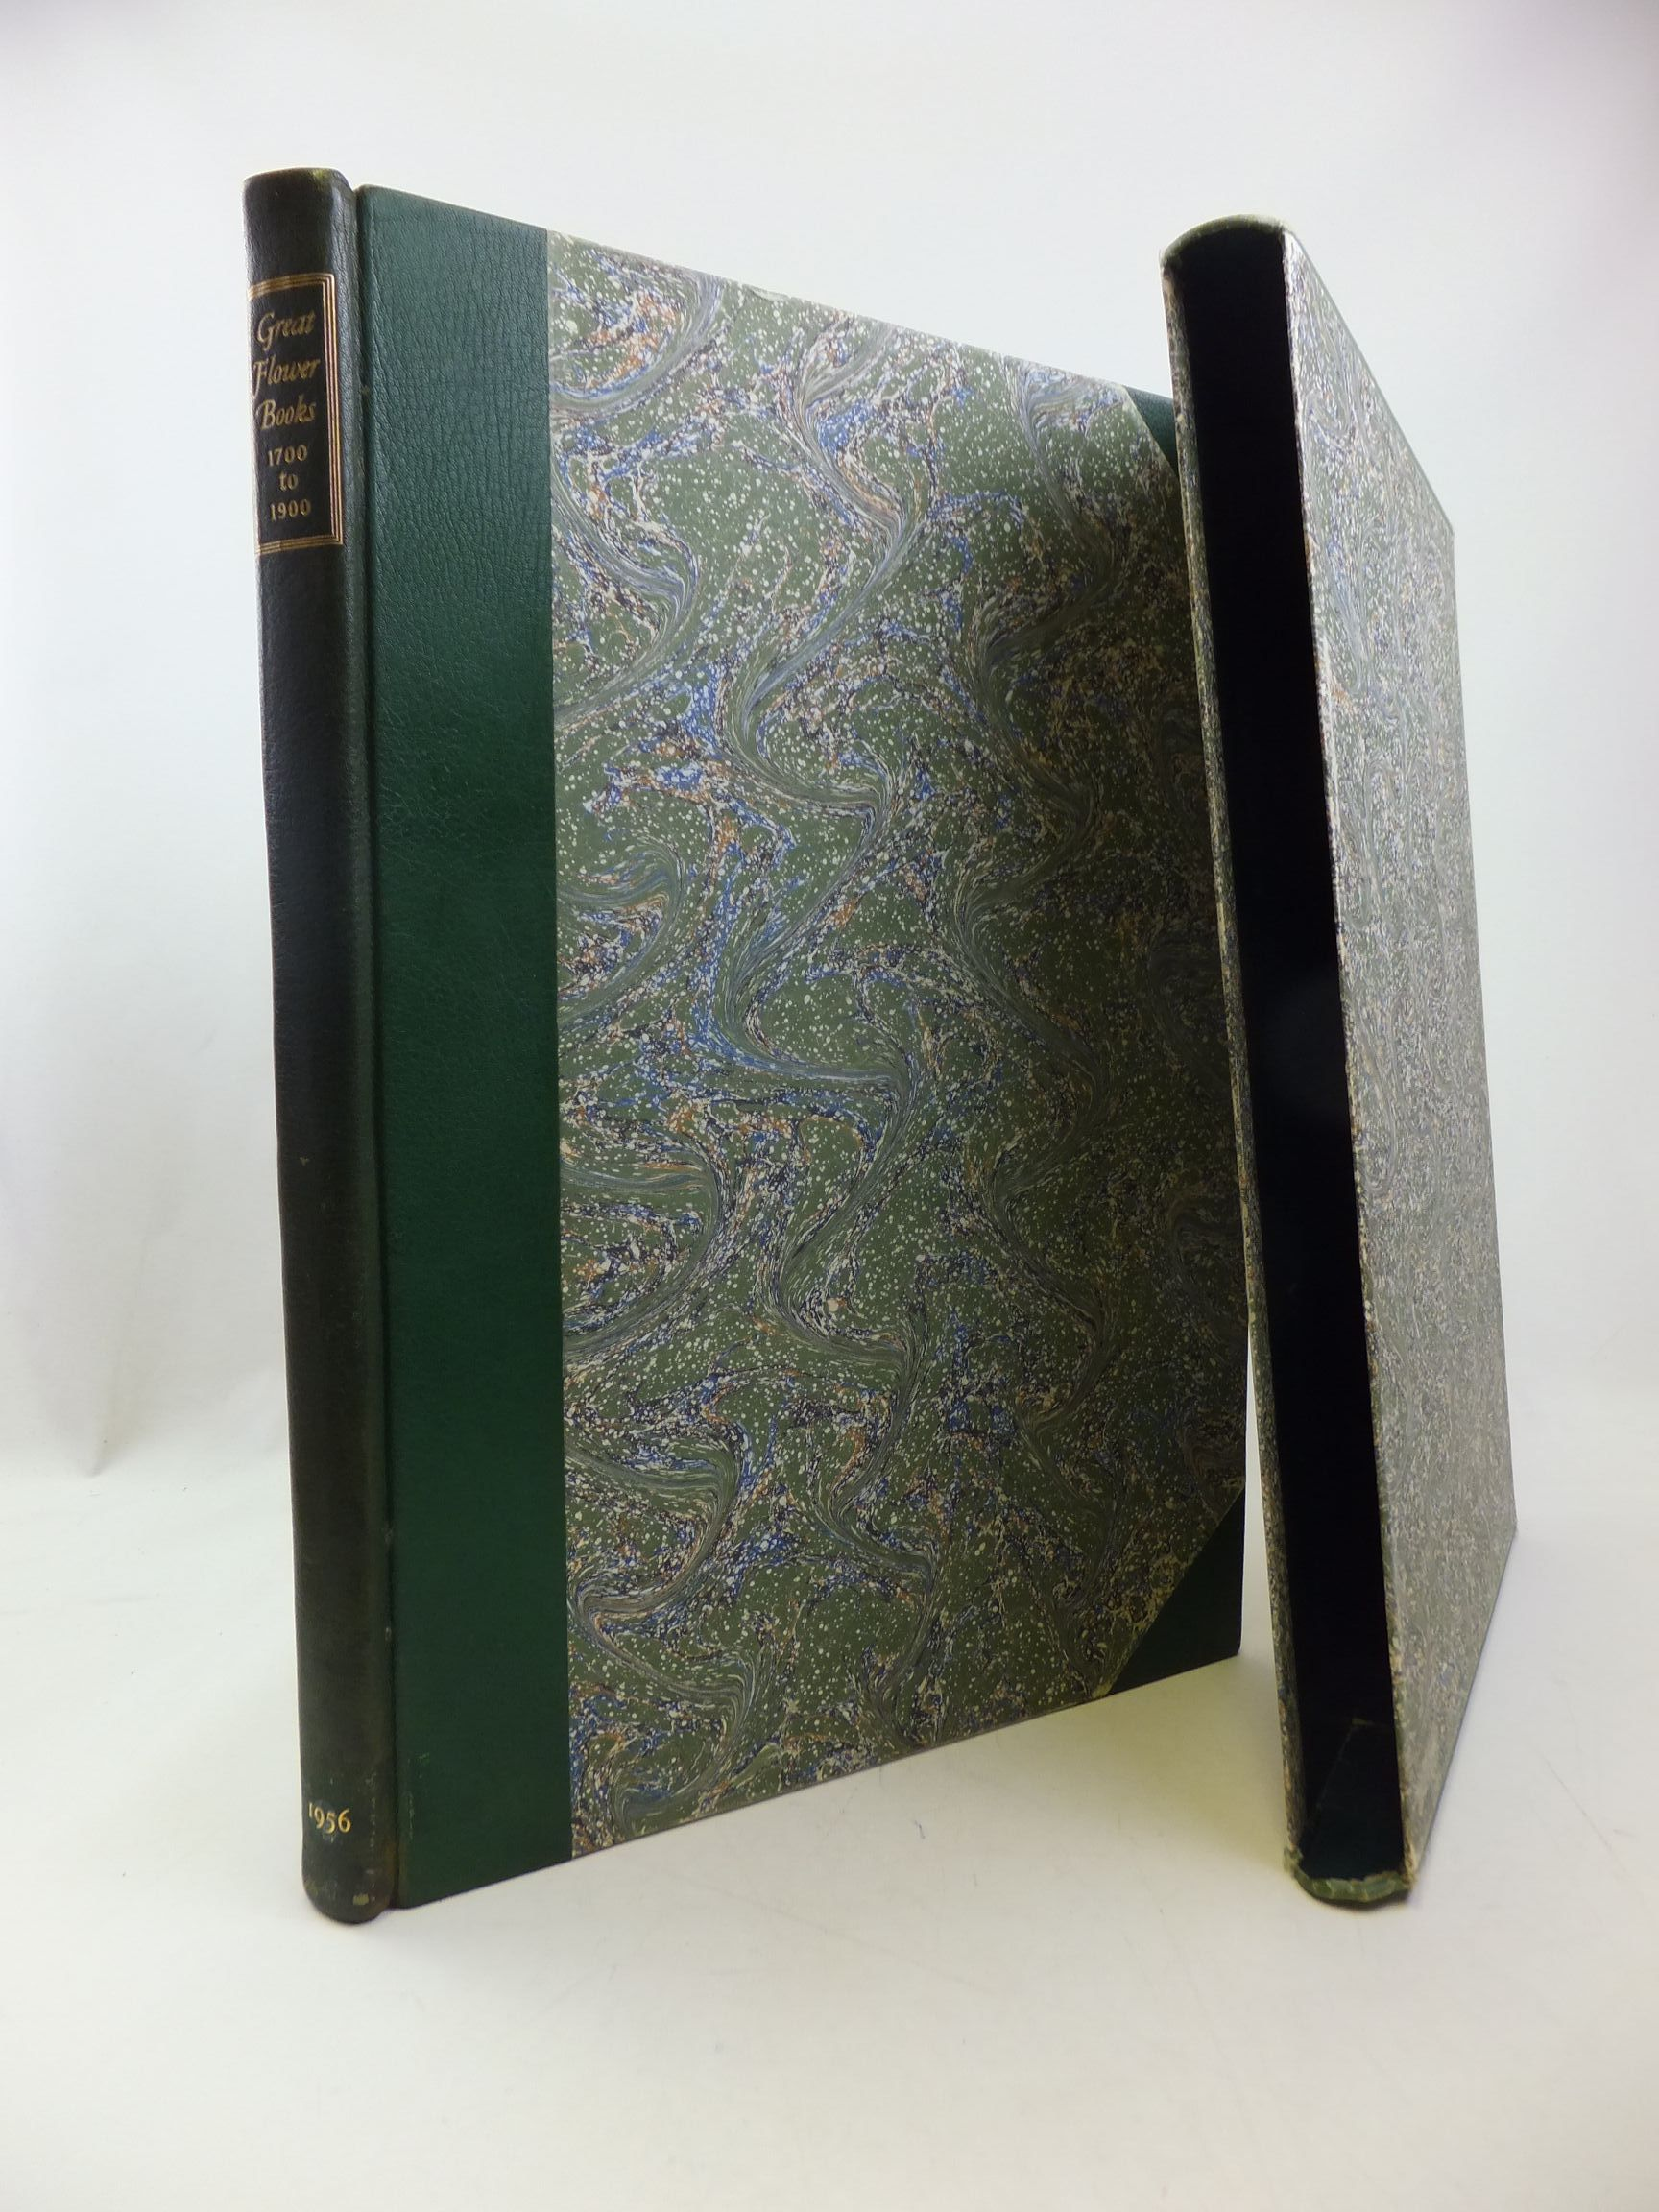 Photo of GREAT FLOWER BOOKS 1700-1900 written by Sitwell, Sacheverell Blunt, Wilfrid published by Collins (STOCK CODE: 1710390)  for sale by Stella & Rose's Books